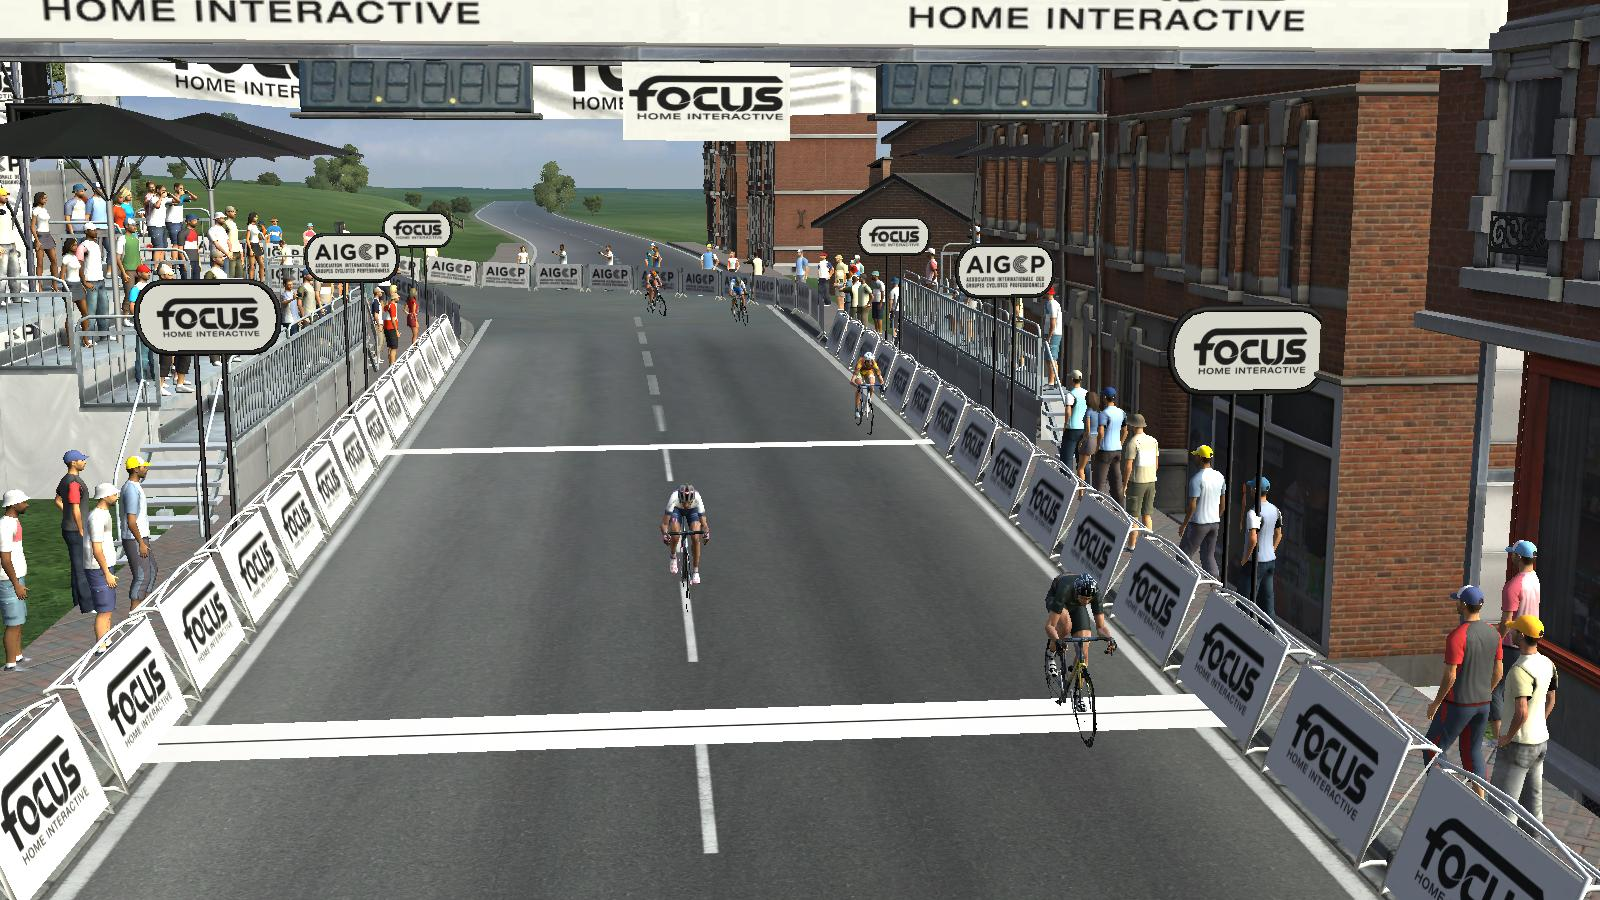 pcmdaily.com/images/mg/2019/Races/PTHC/Rheden/48.jpg